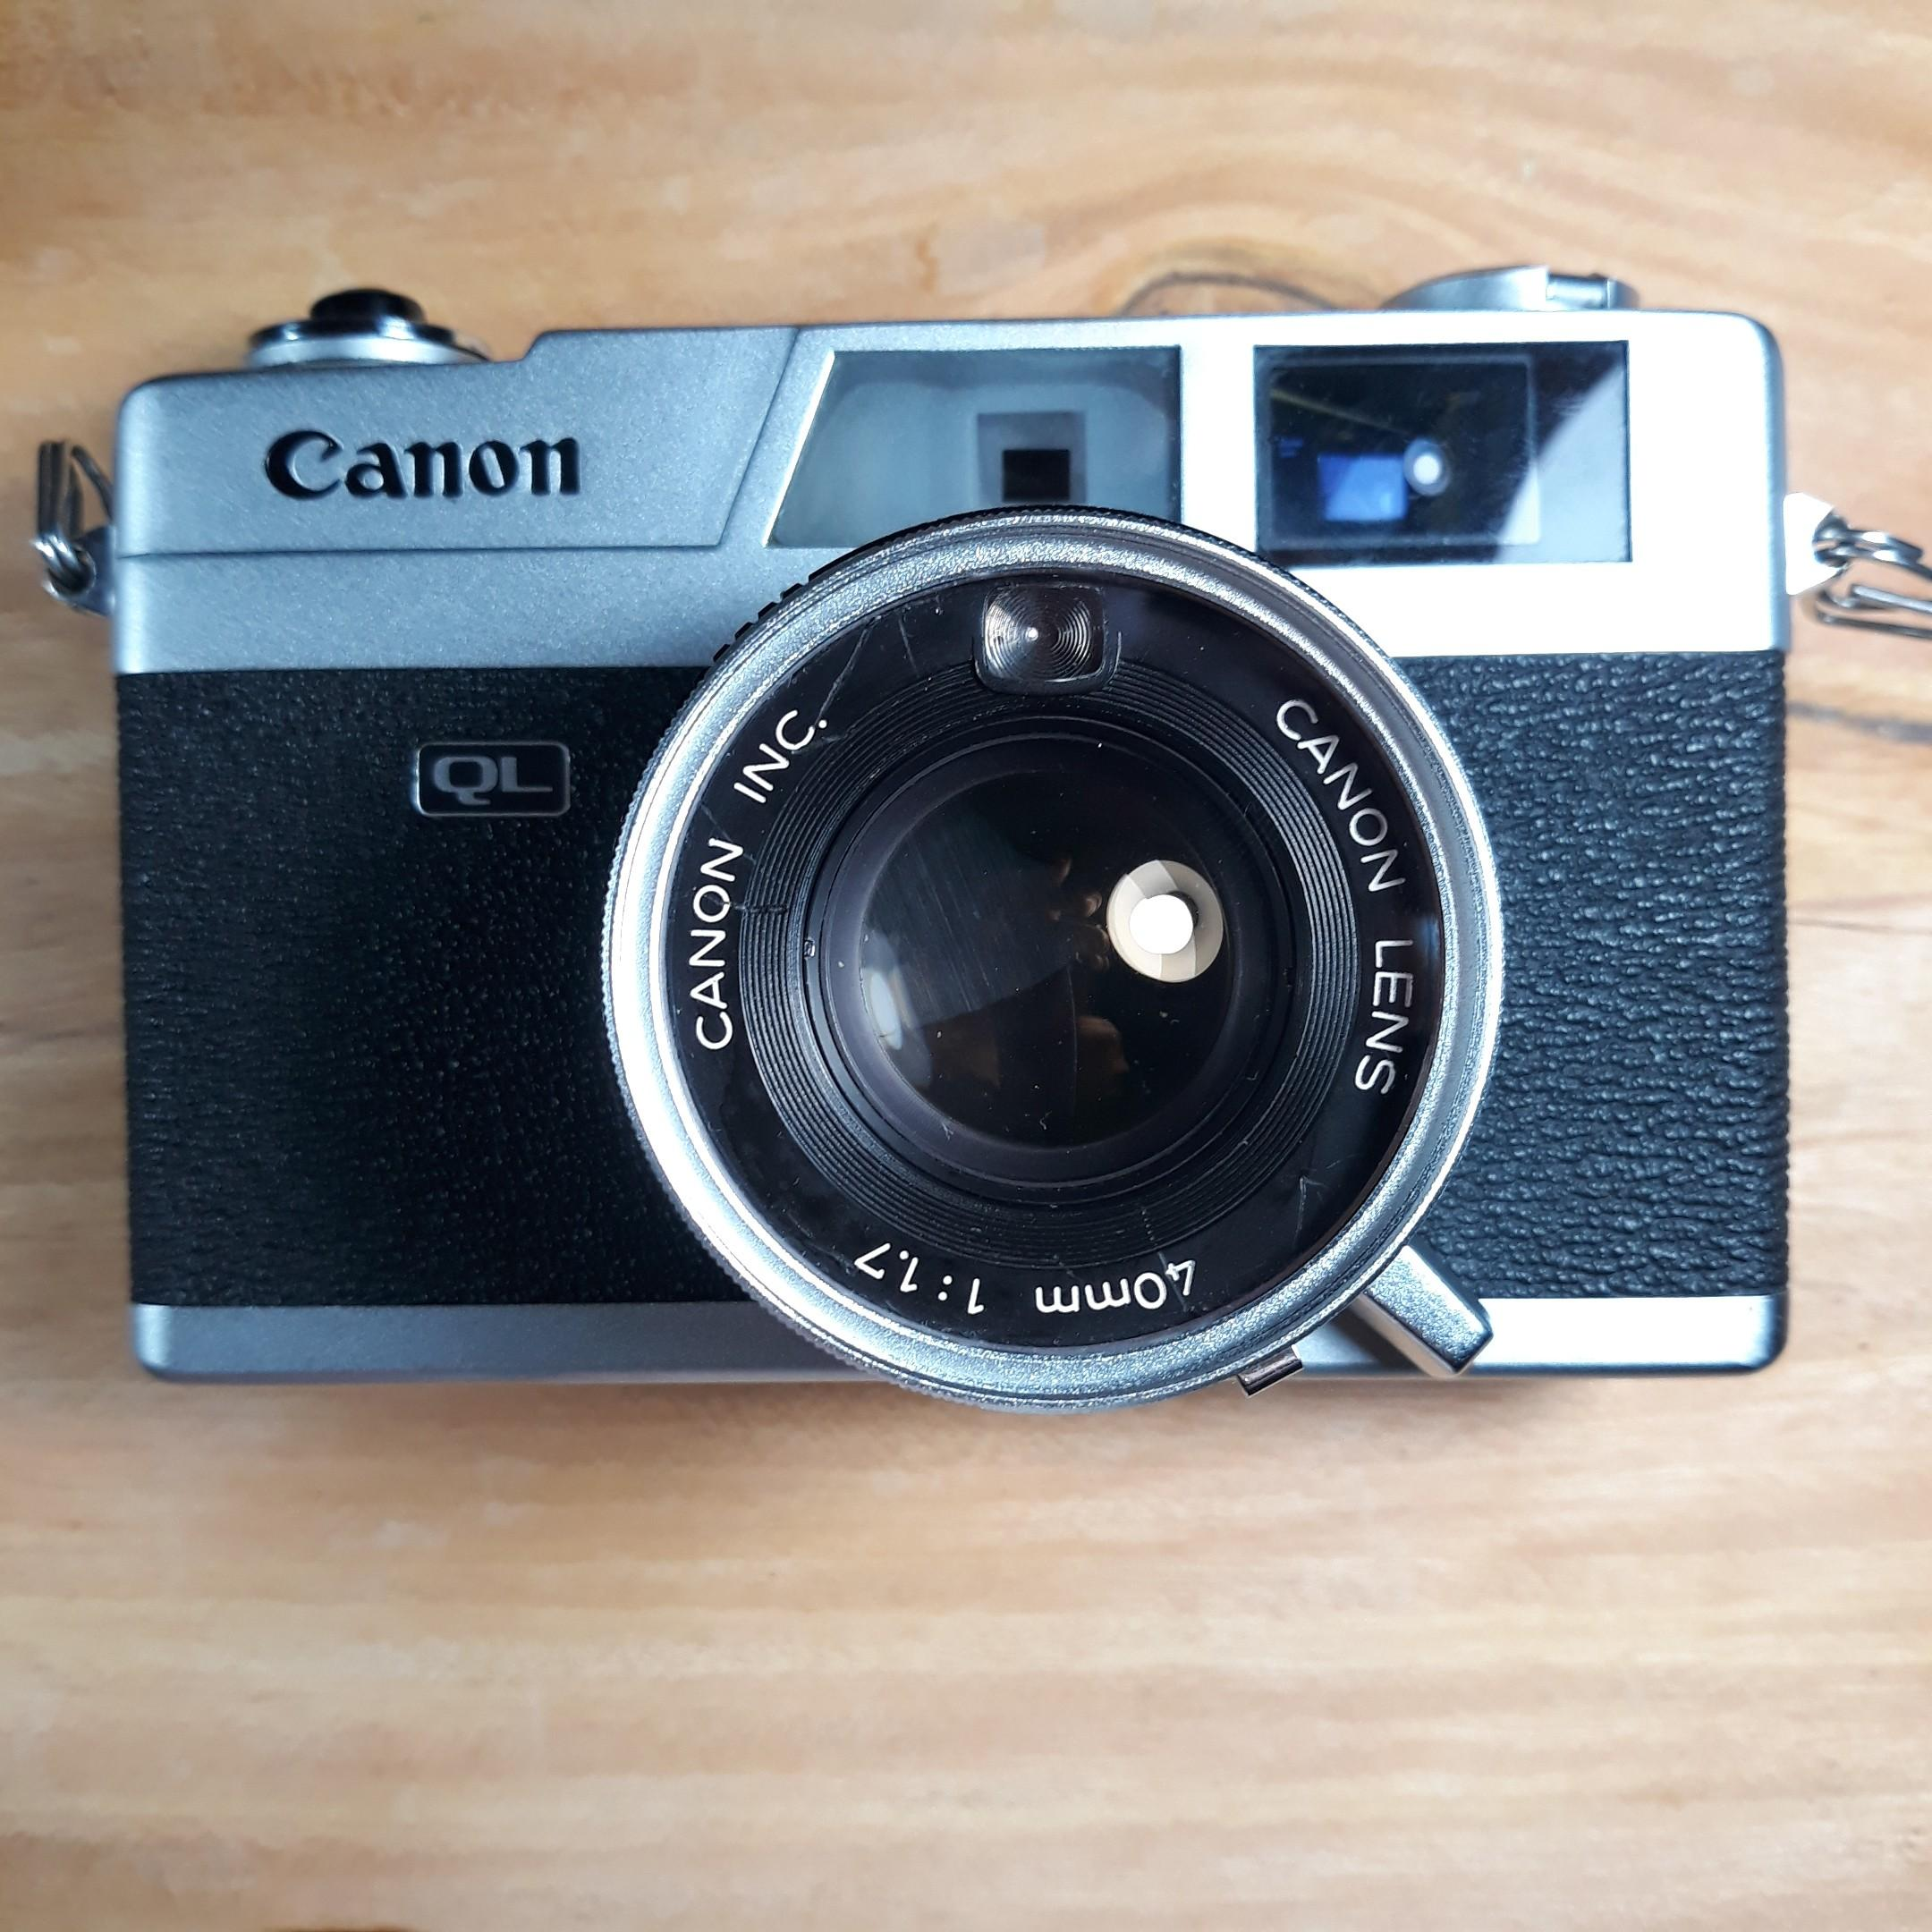 Canon Canonet QL17 photo